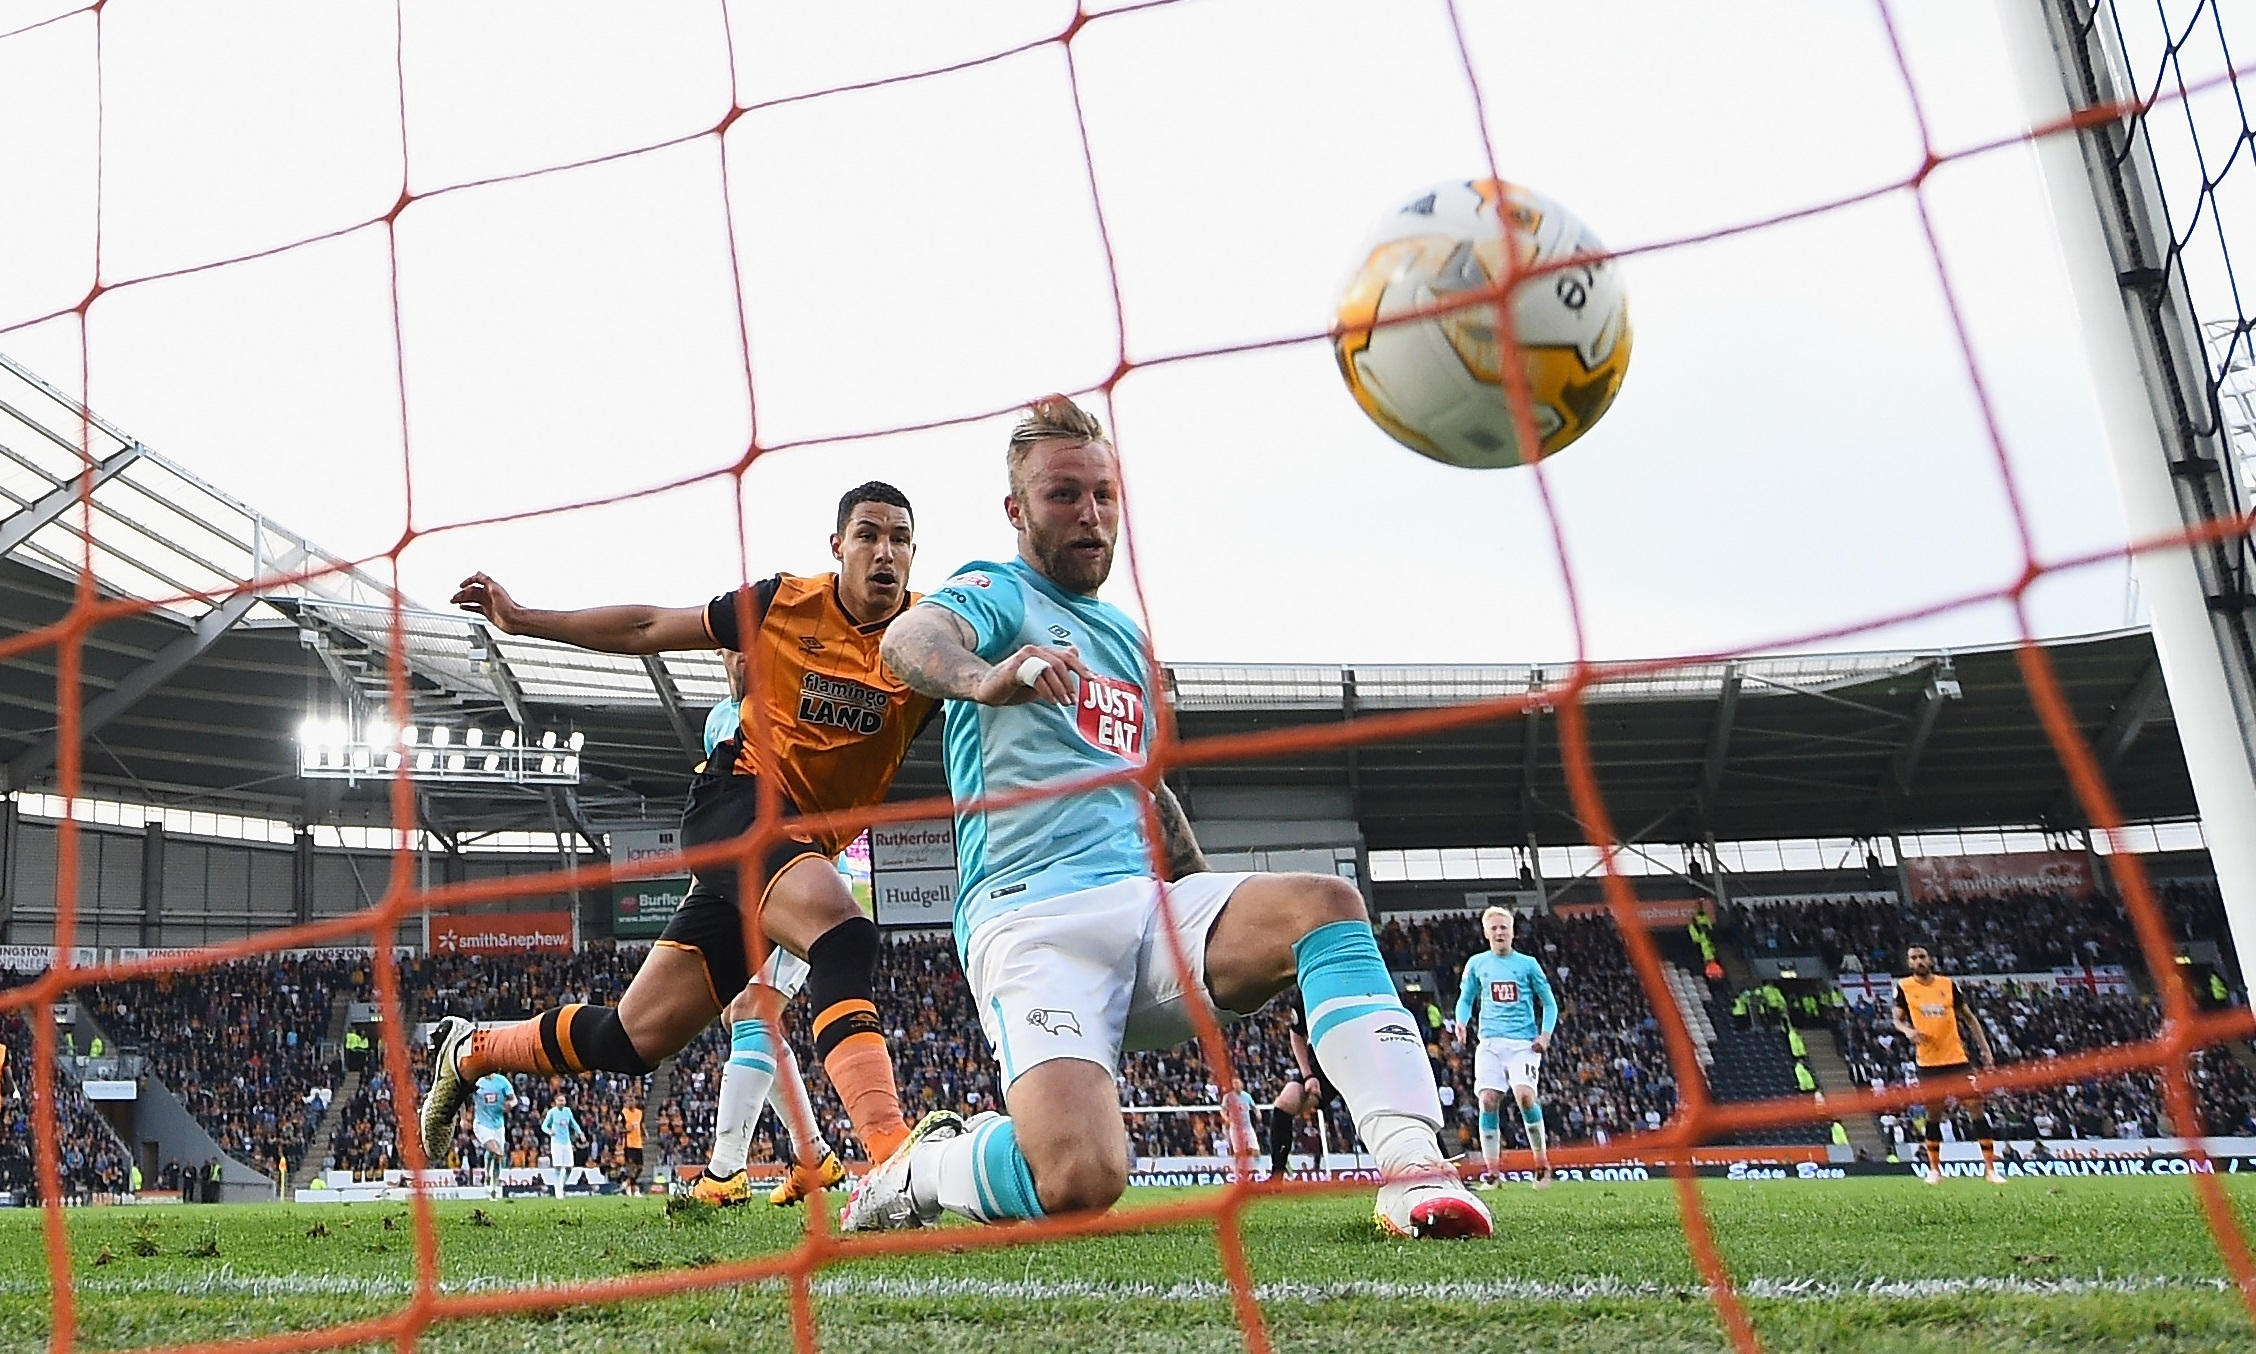 Johnny Russell finds the net for Derby County - but it wasn't enough as his side crashed out of the play-offs.